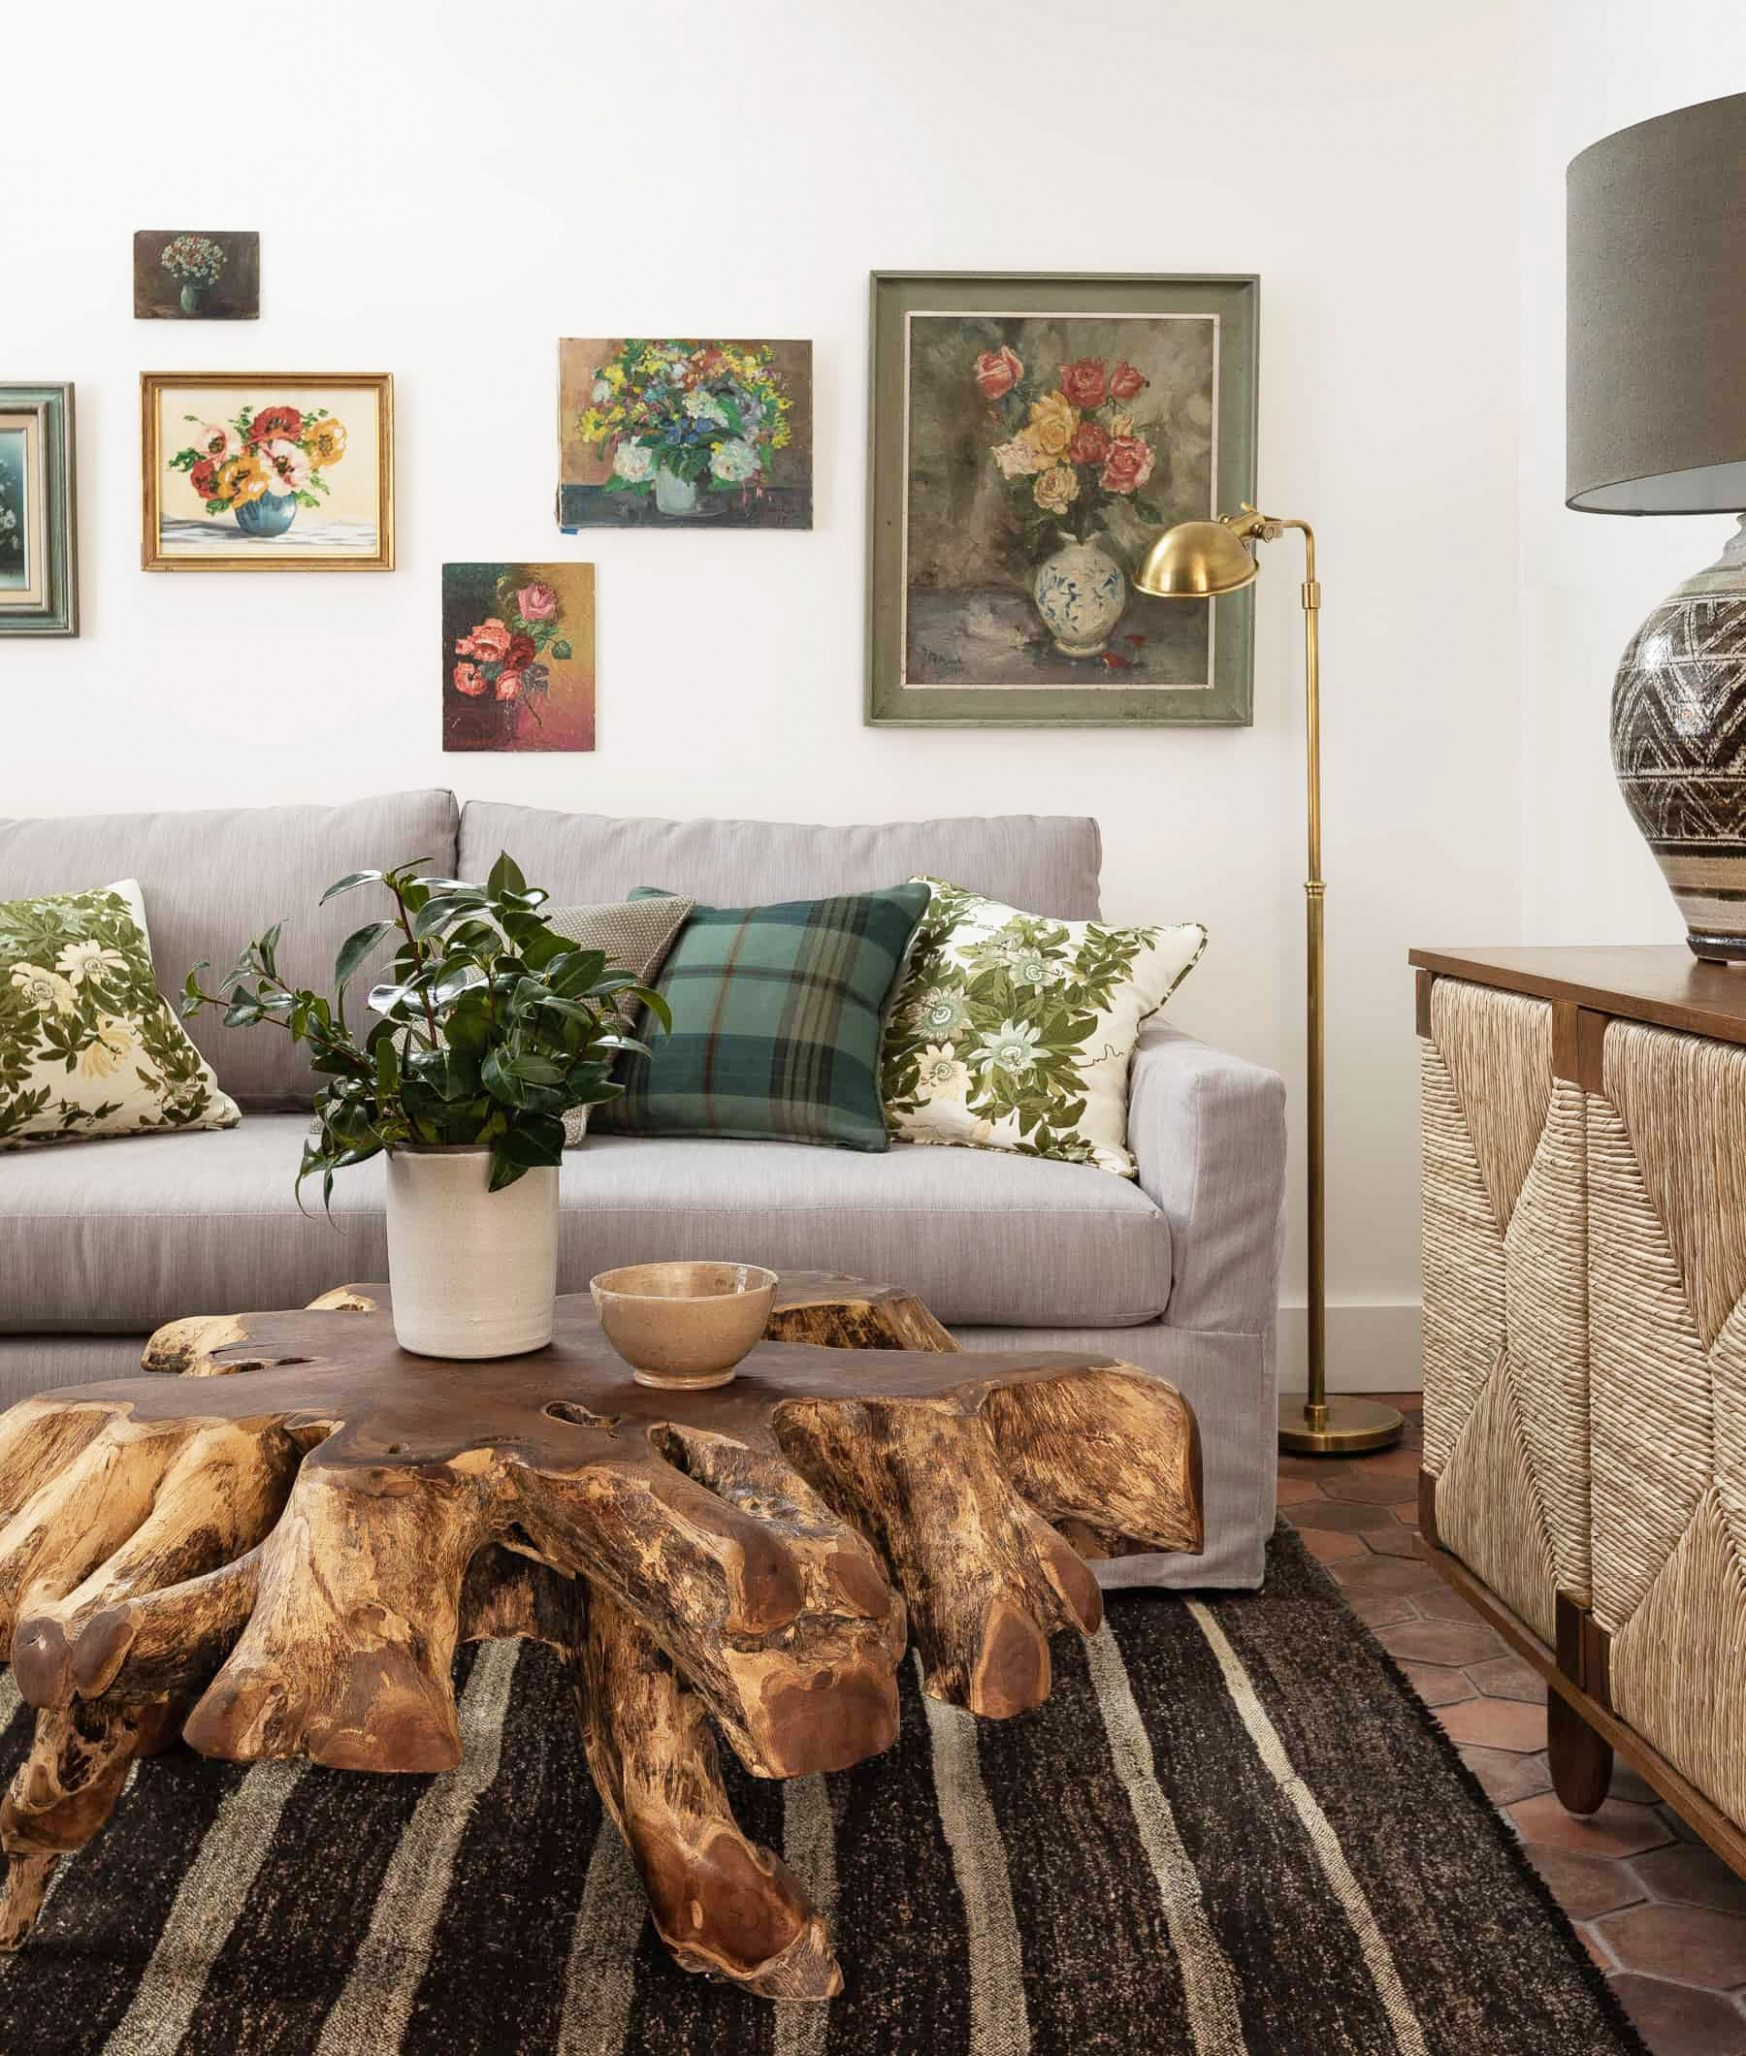 How to Decorate Your First Apartment - First Apartment Decorating  - Simple Apartment Decor Ideas